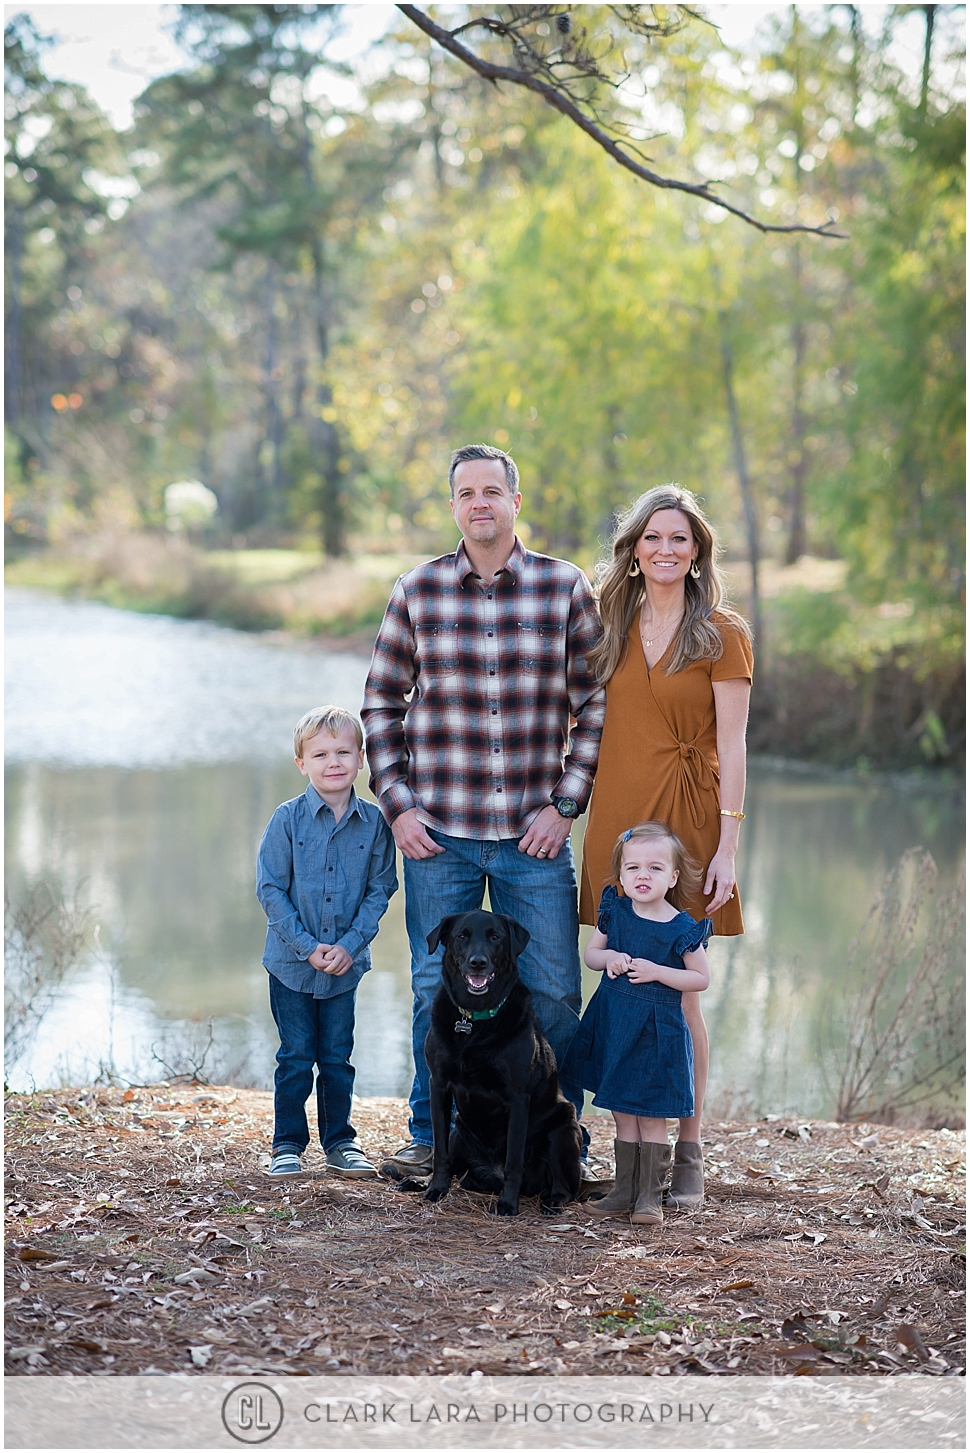 conroe-forest-family-photo-wyatt_0003.jpg